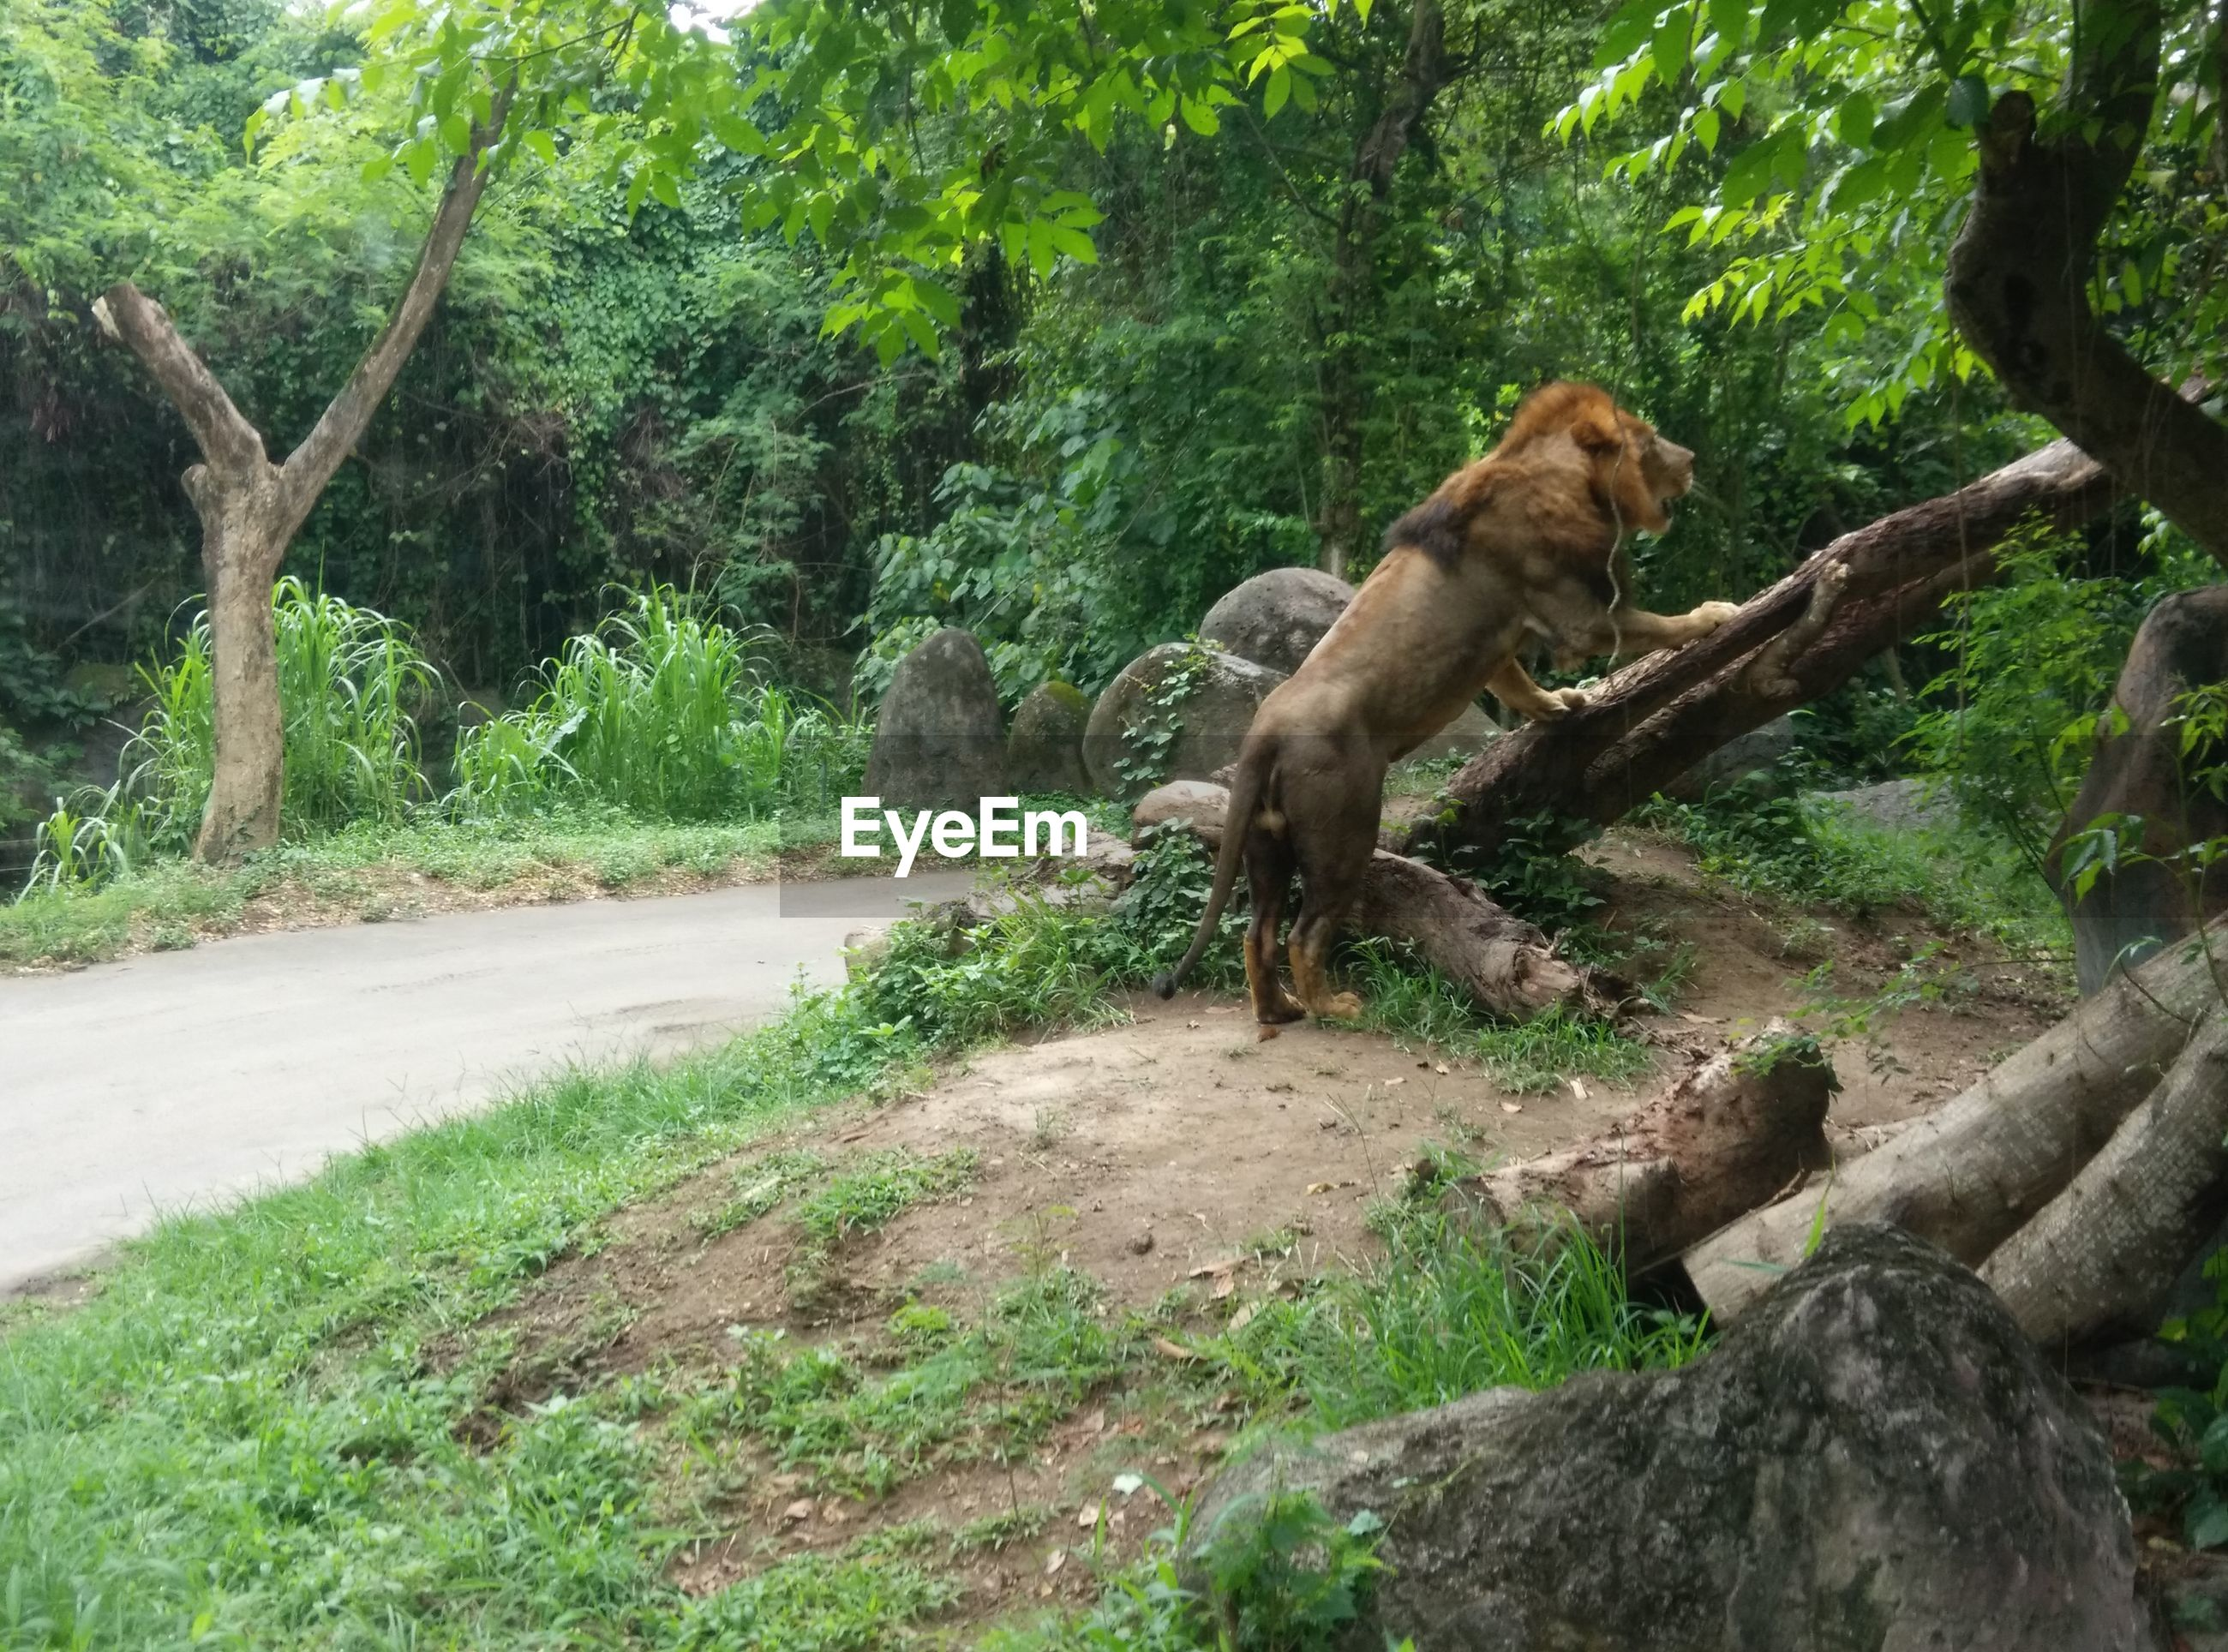 Lion on standing on tree trunk at bali safari and marine park